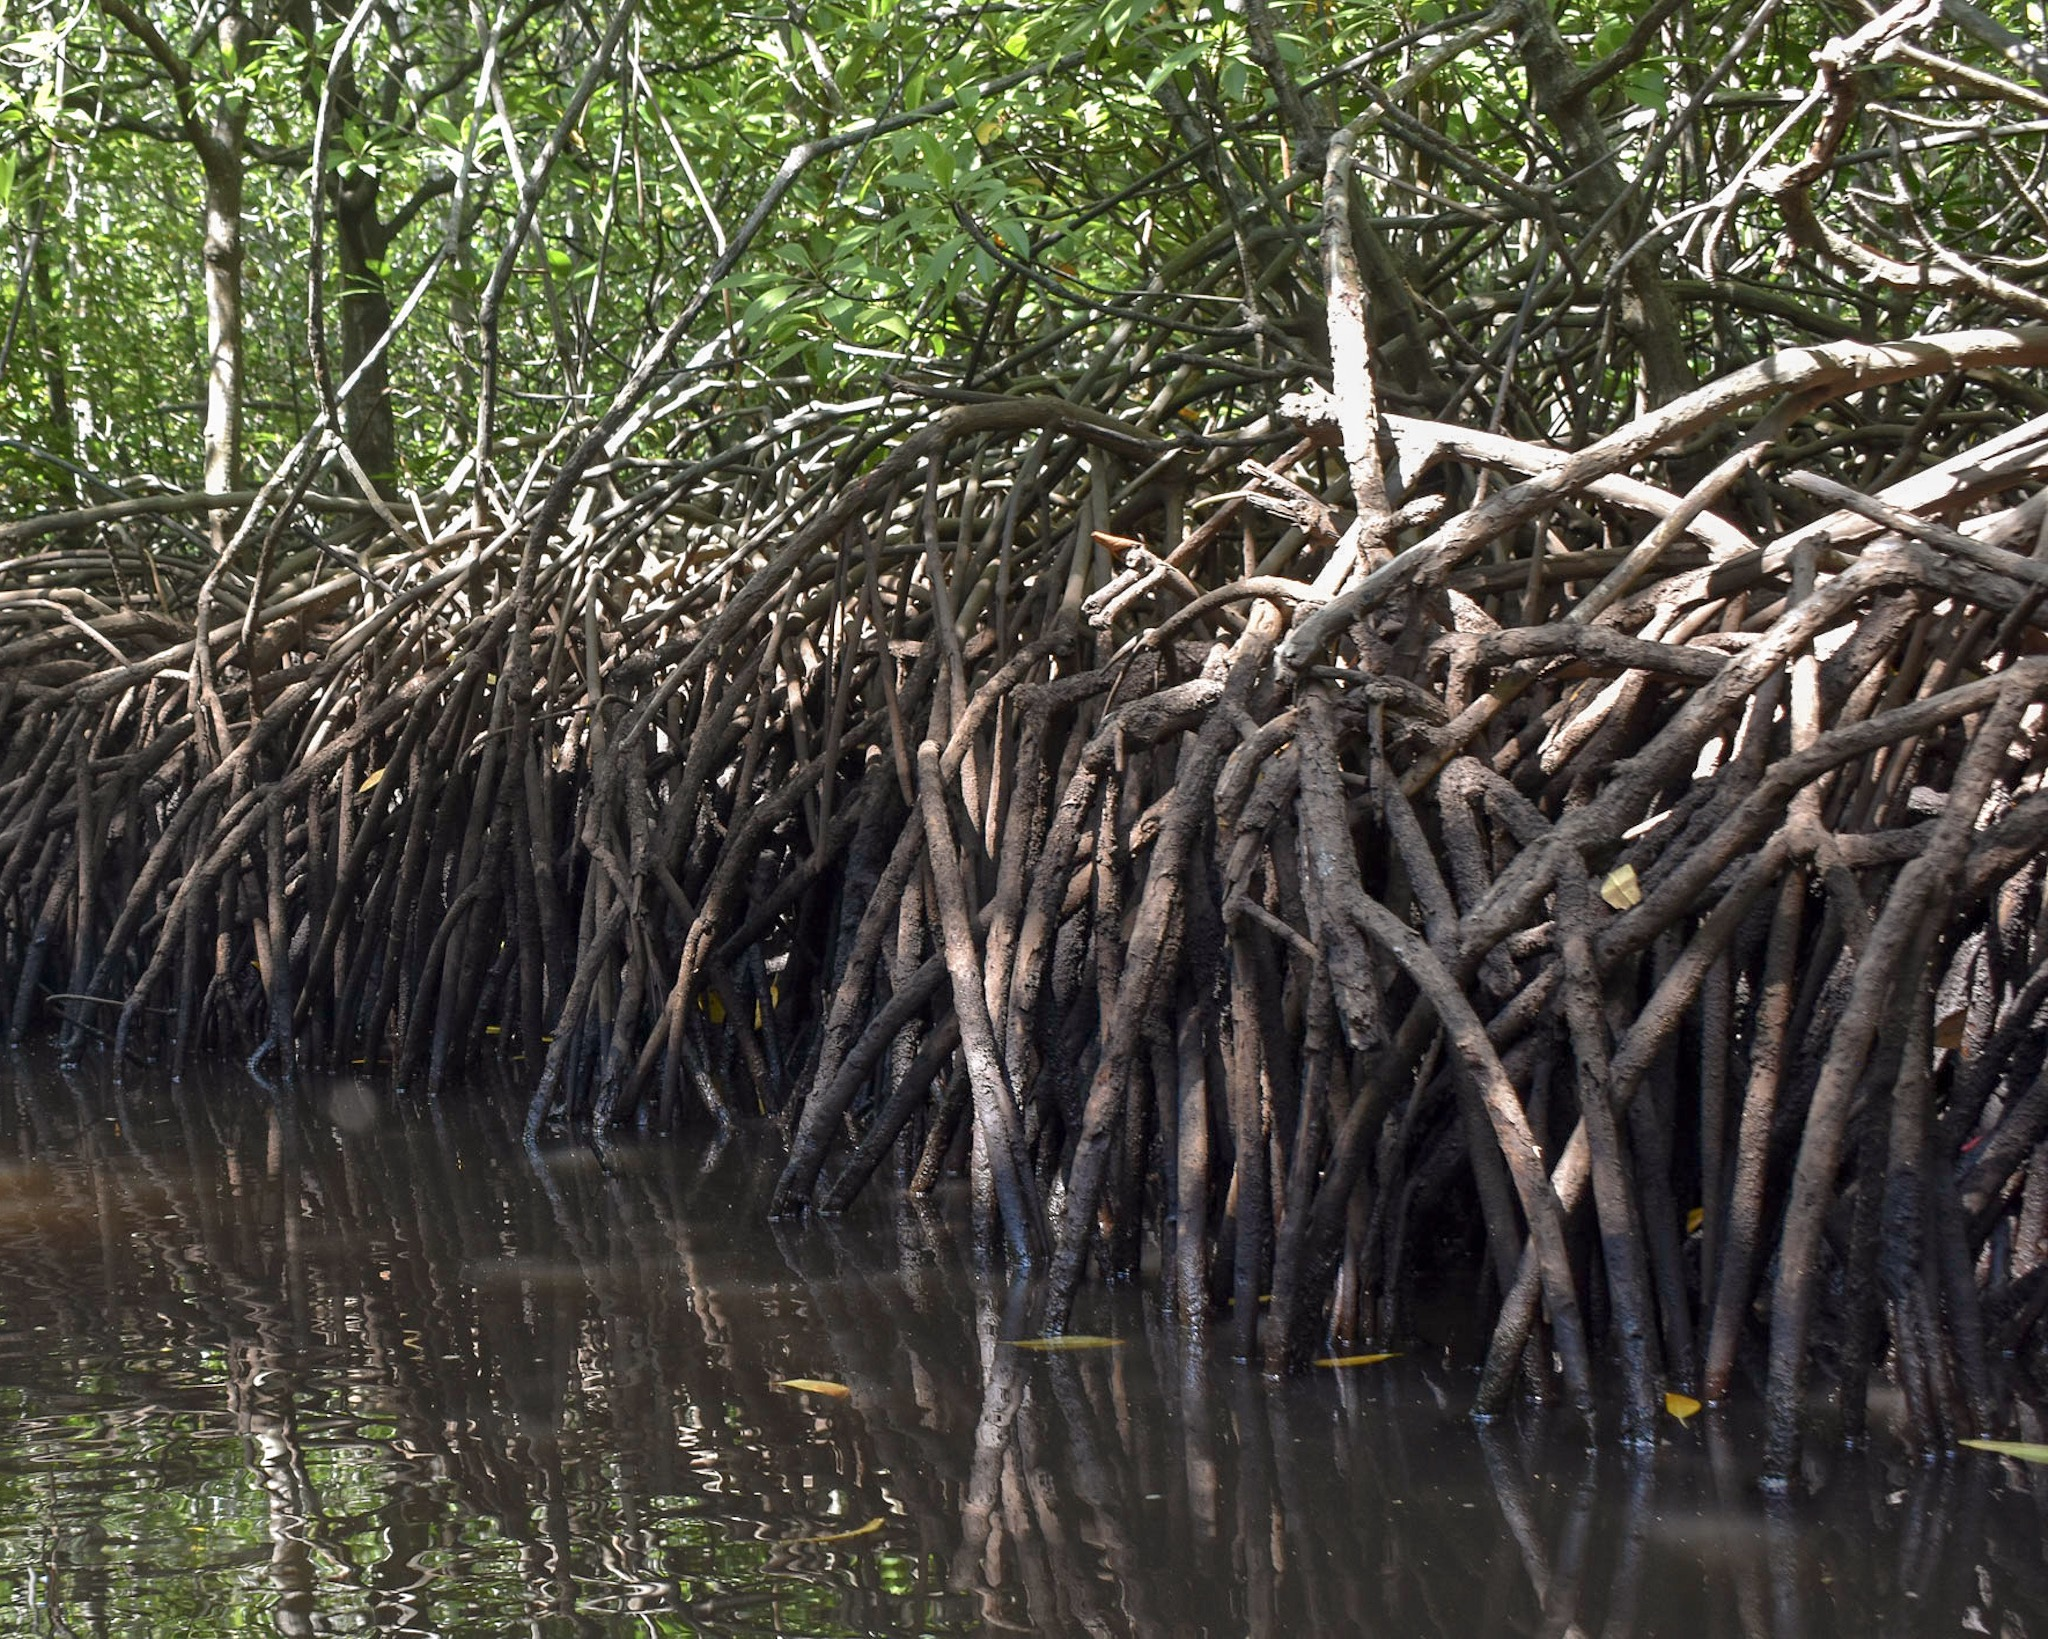 Mangrove Forests on Lombok Island